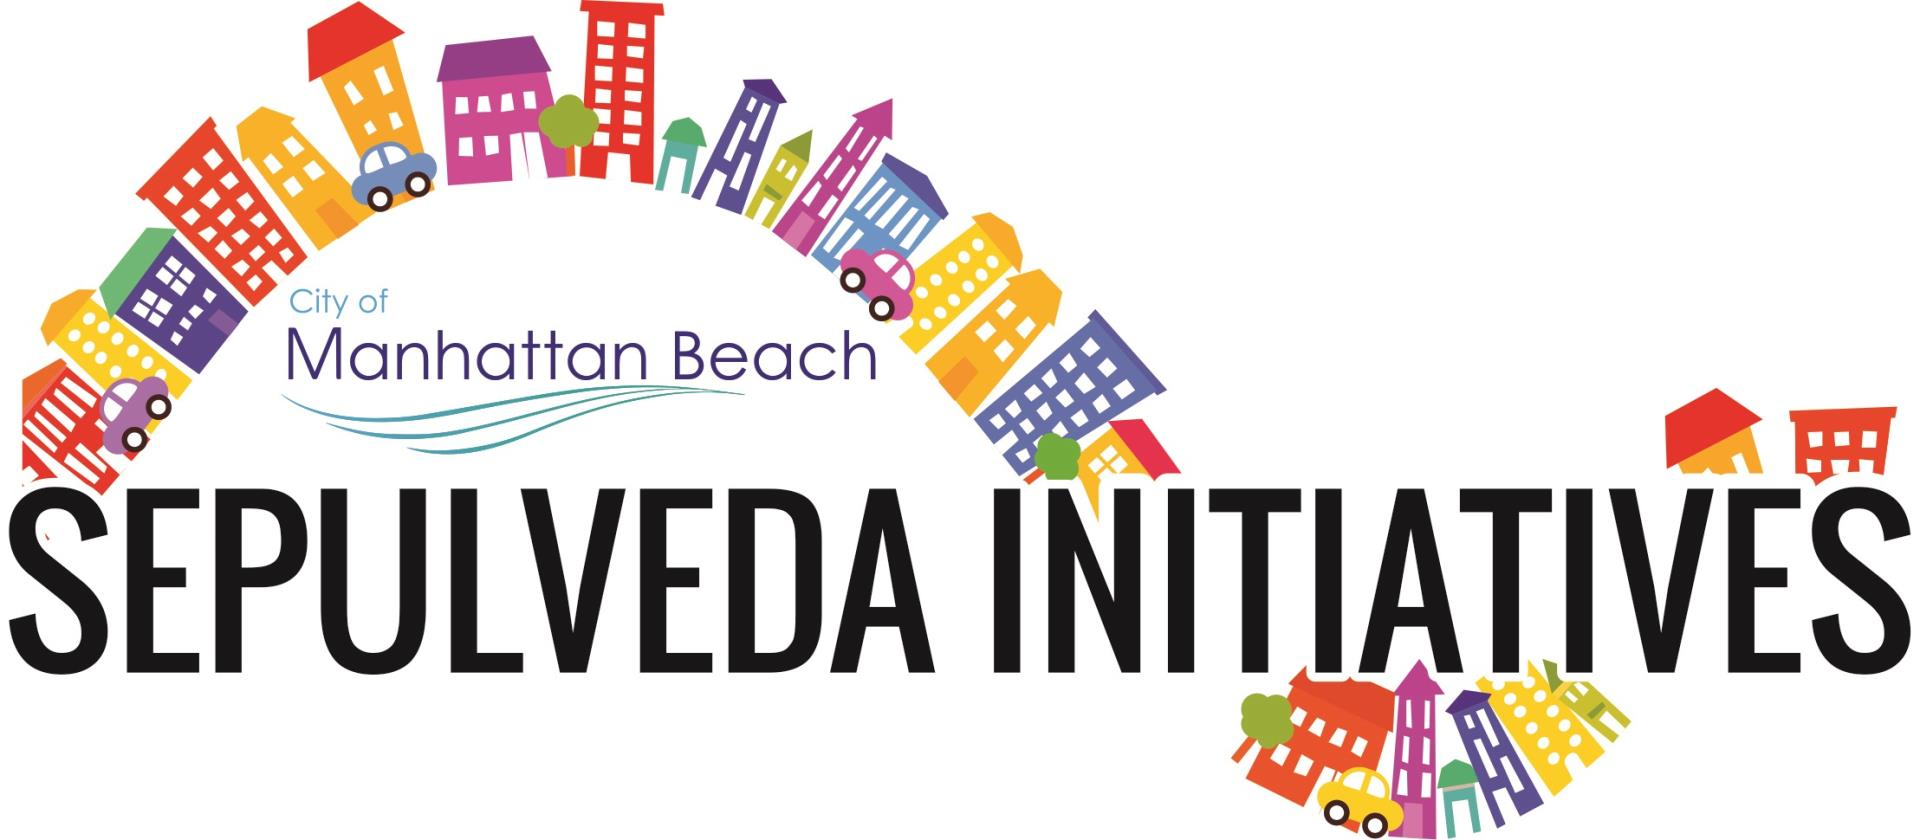 Sepulveda Initiatives FINAL